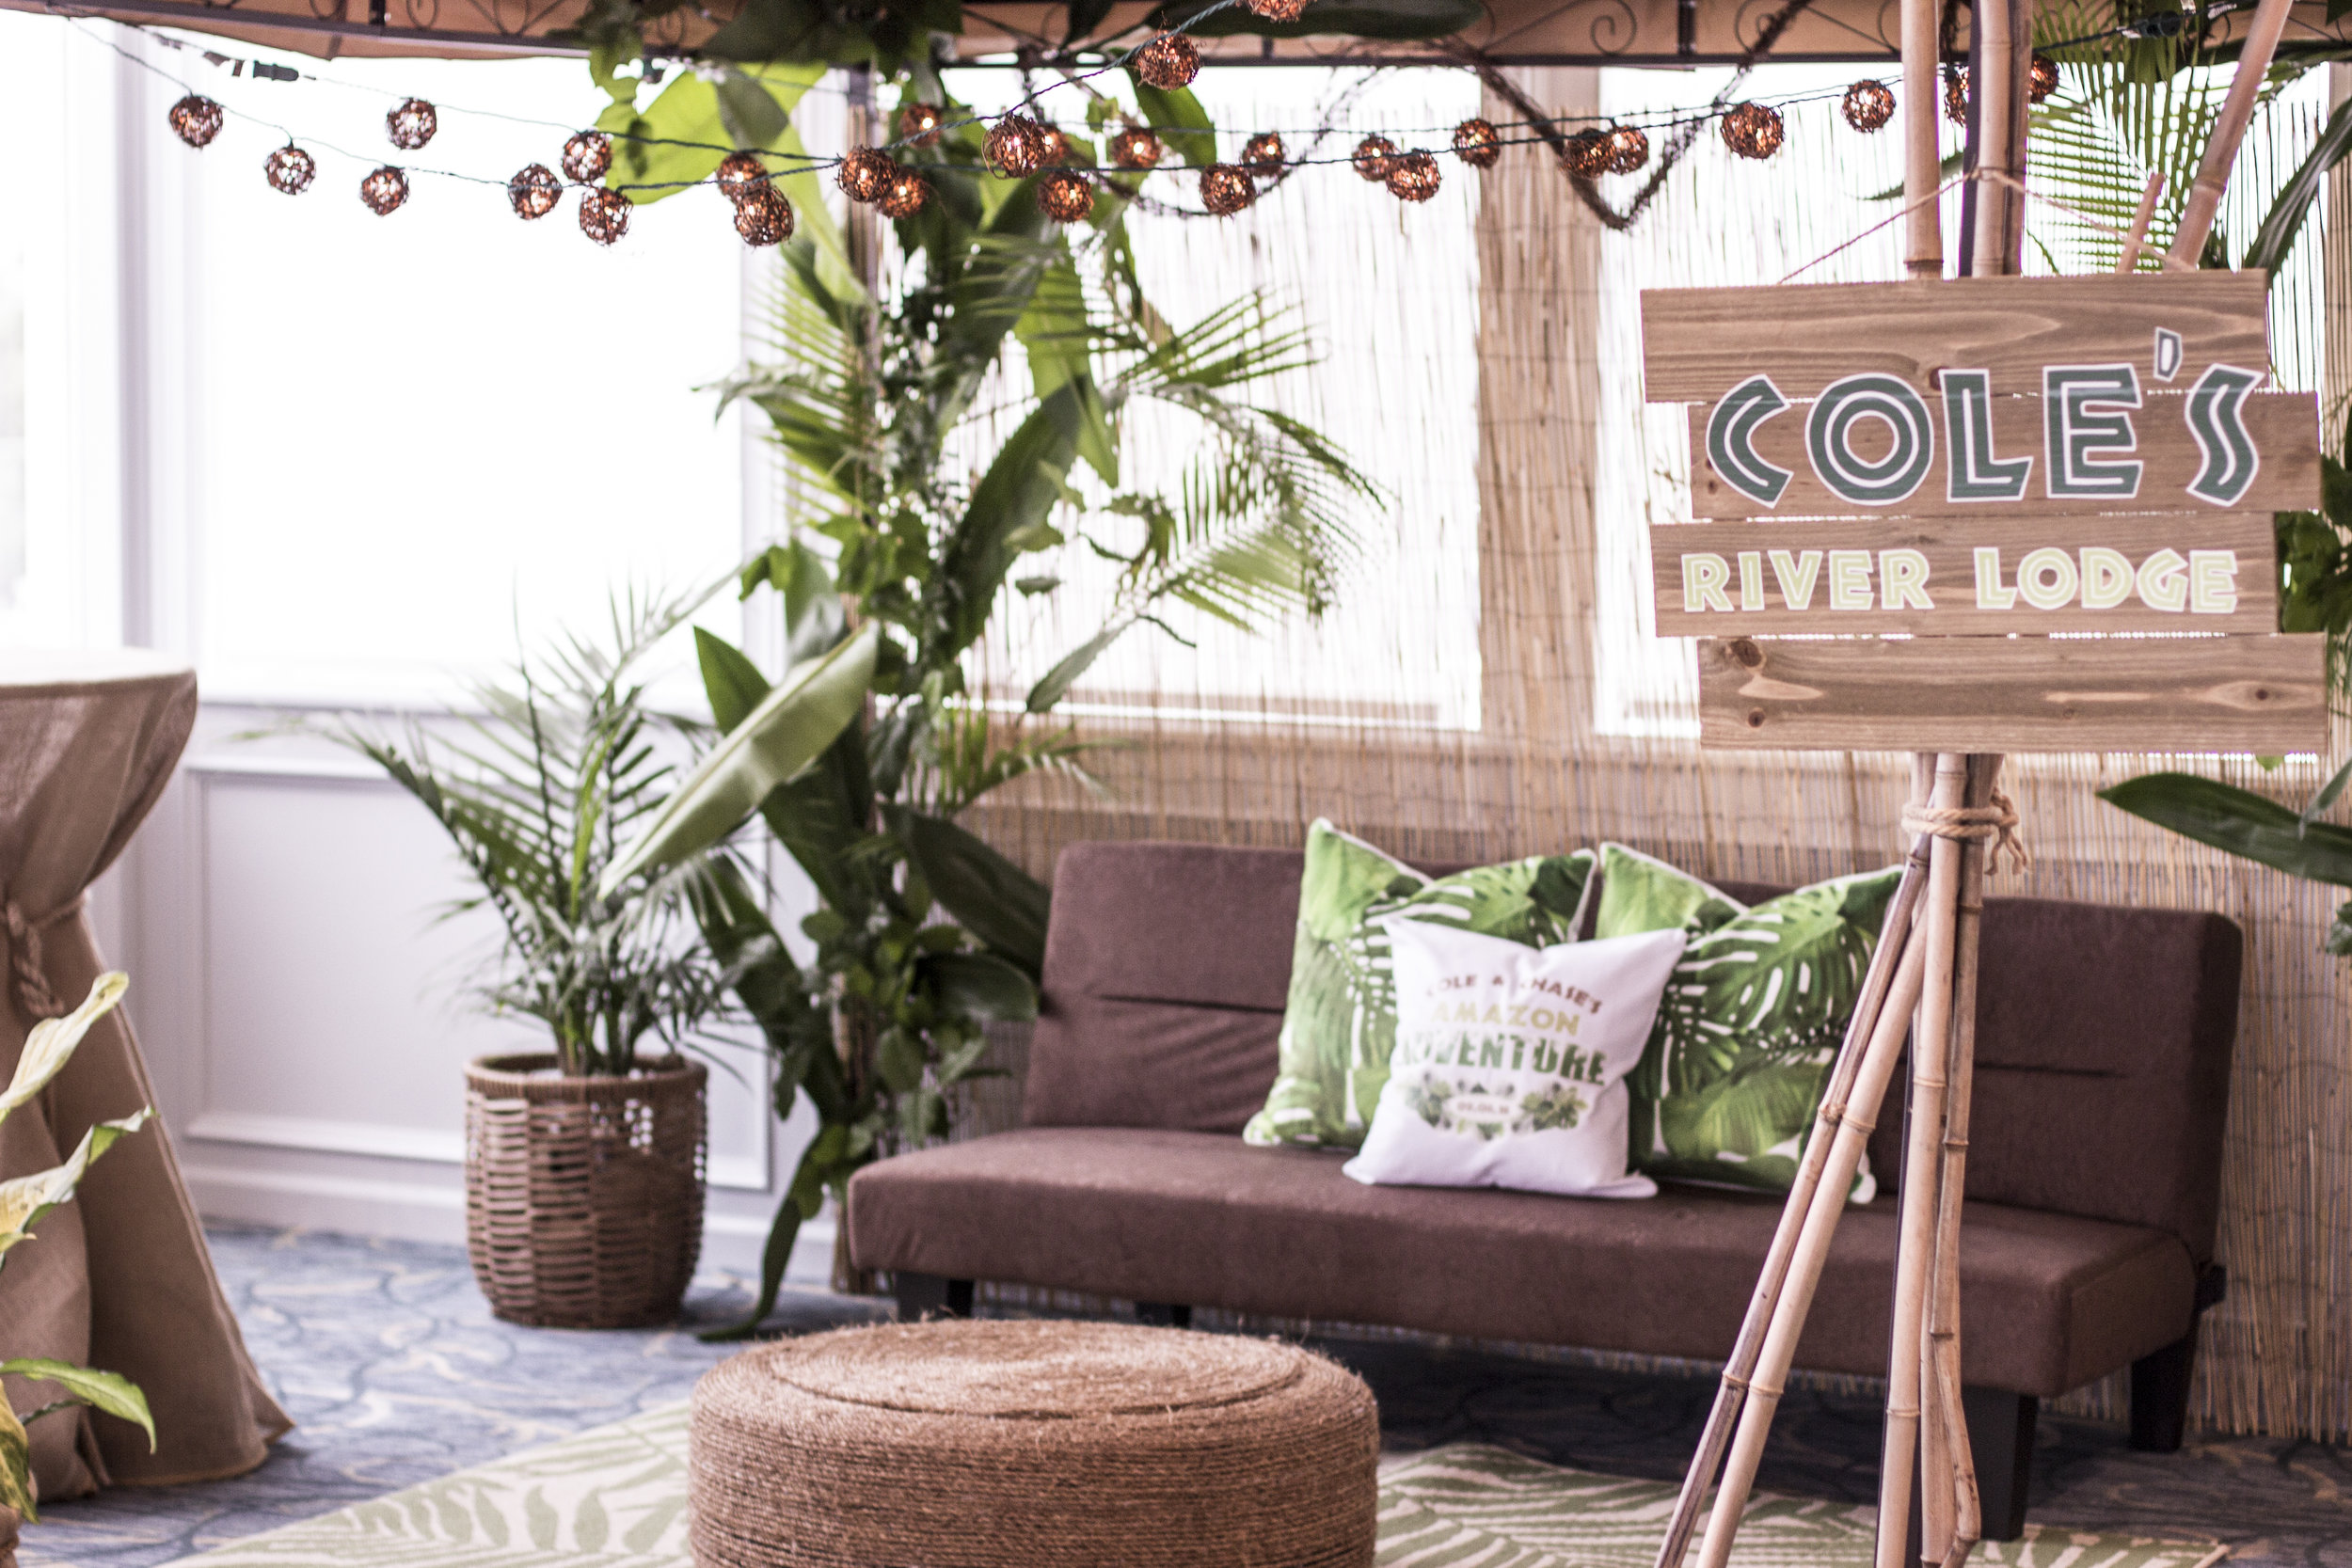 Amazon Jungle B'Nai Mitzvah Cabana Lounge with Rope Ottoman and Live Greens at Channel Club by Magnolia West